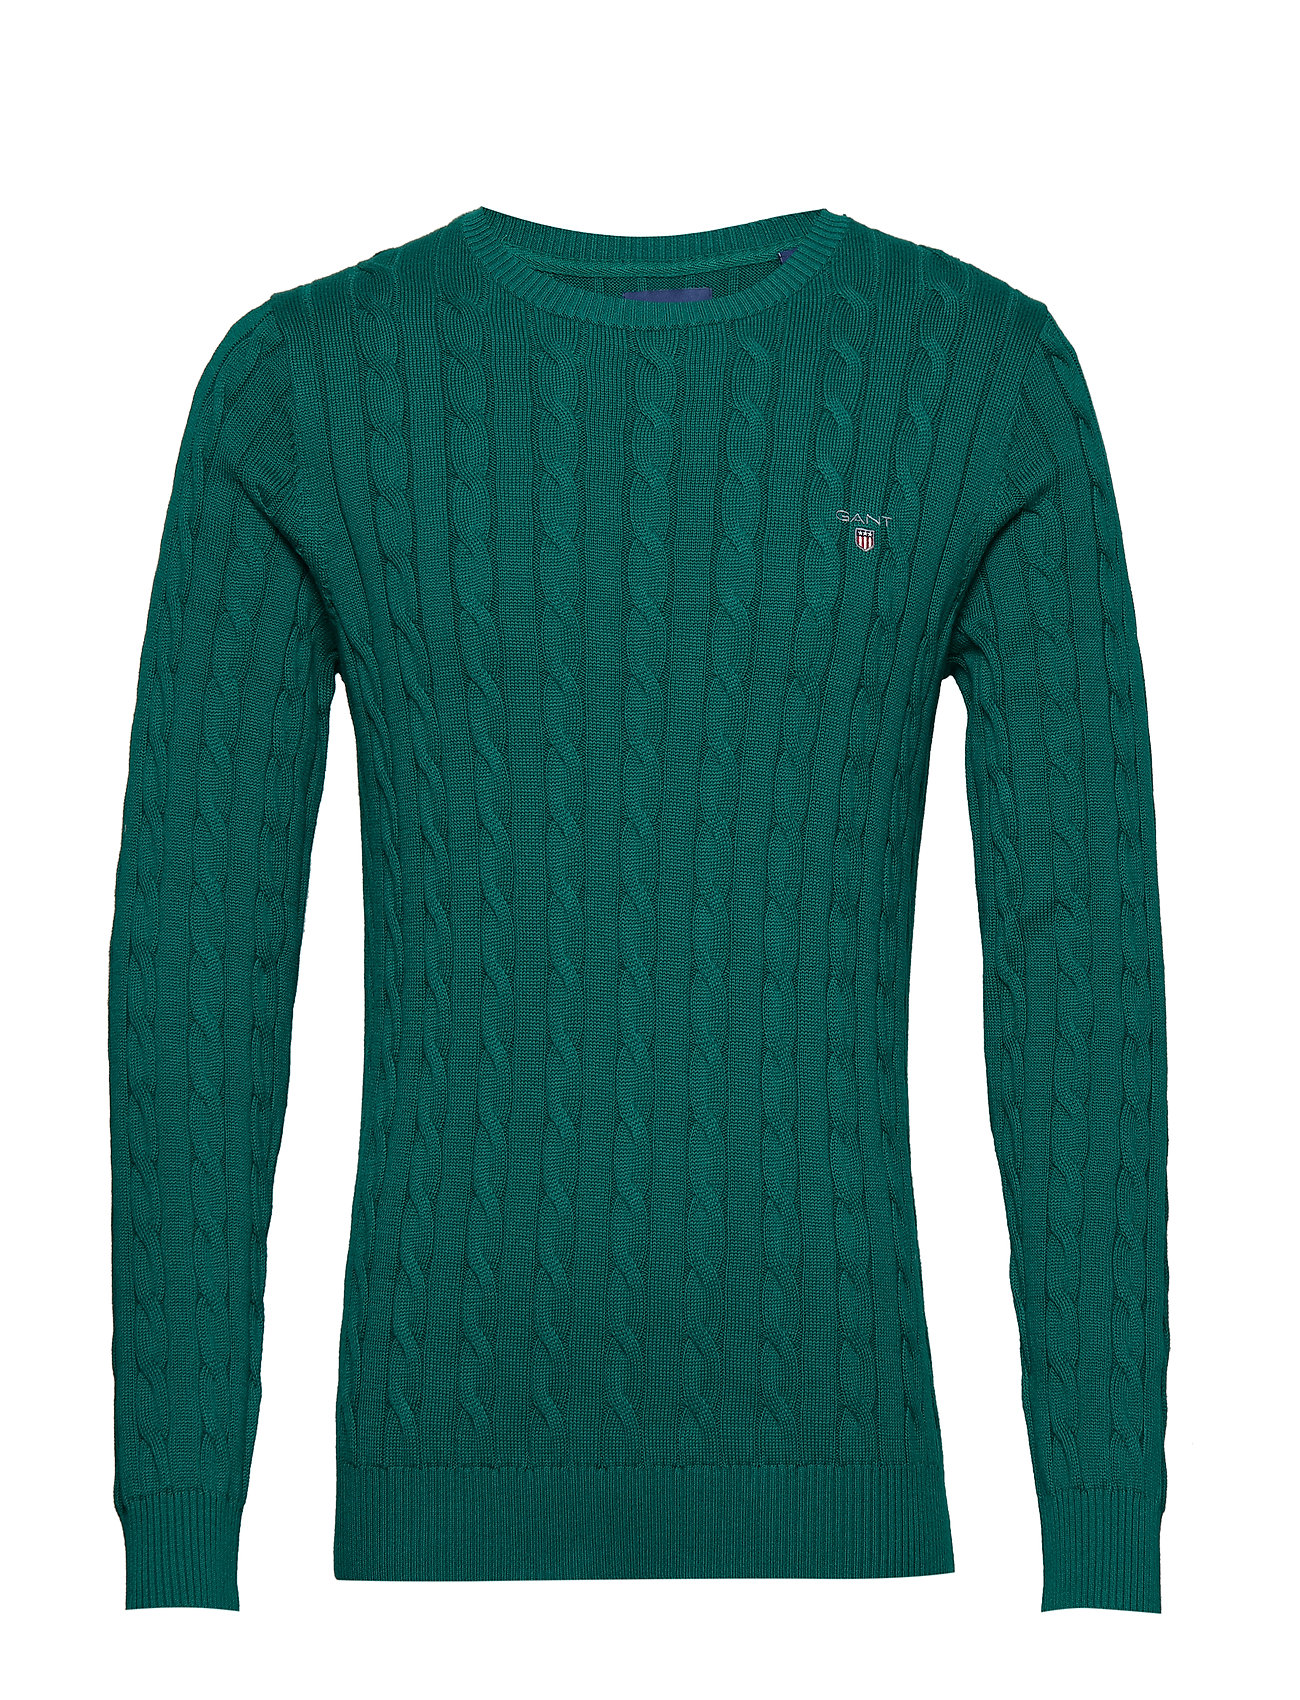 GANT COTTON CABLE CREW - IVY GREEN